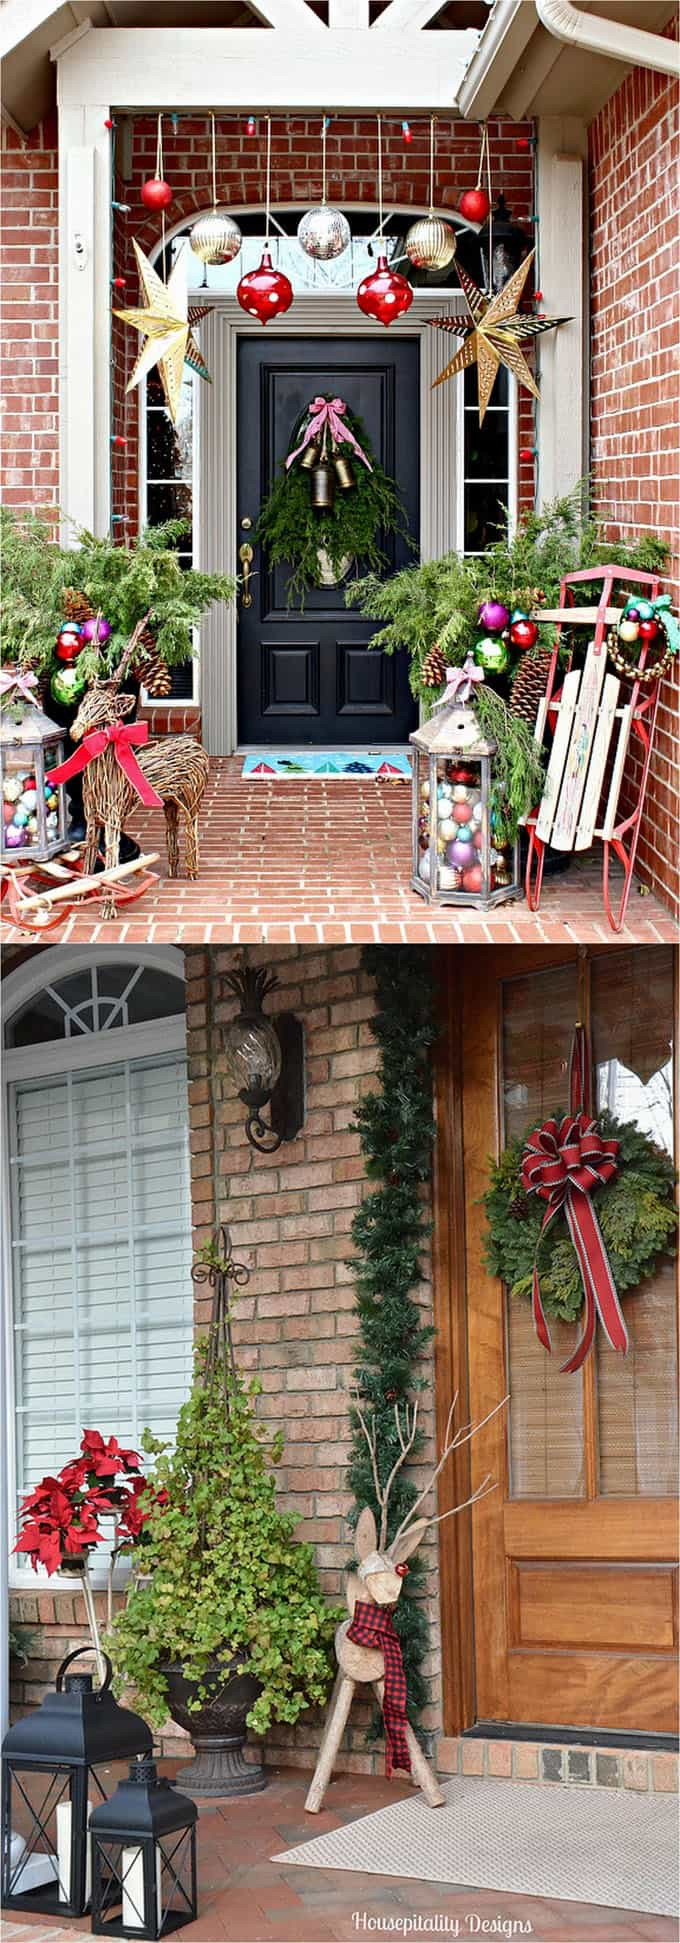 Outdoor Christmas Ornaments  Gorgeous Outdoor Christmas Decorations 32 Best Ideas